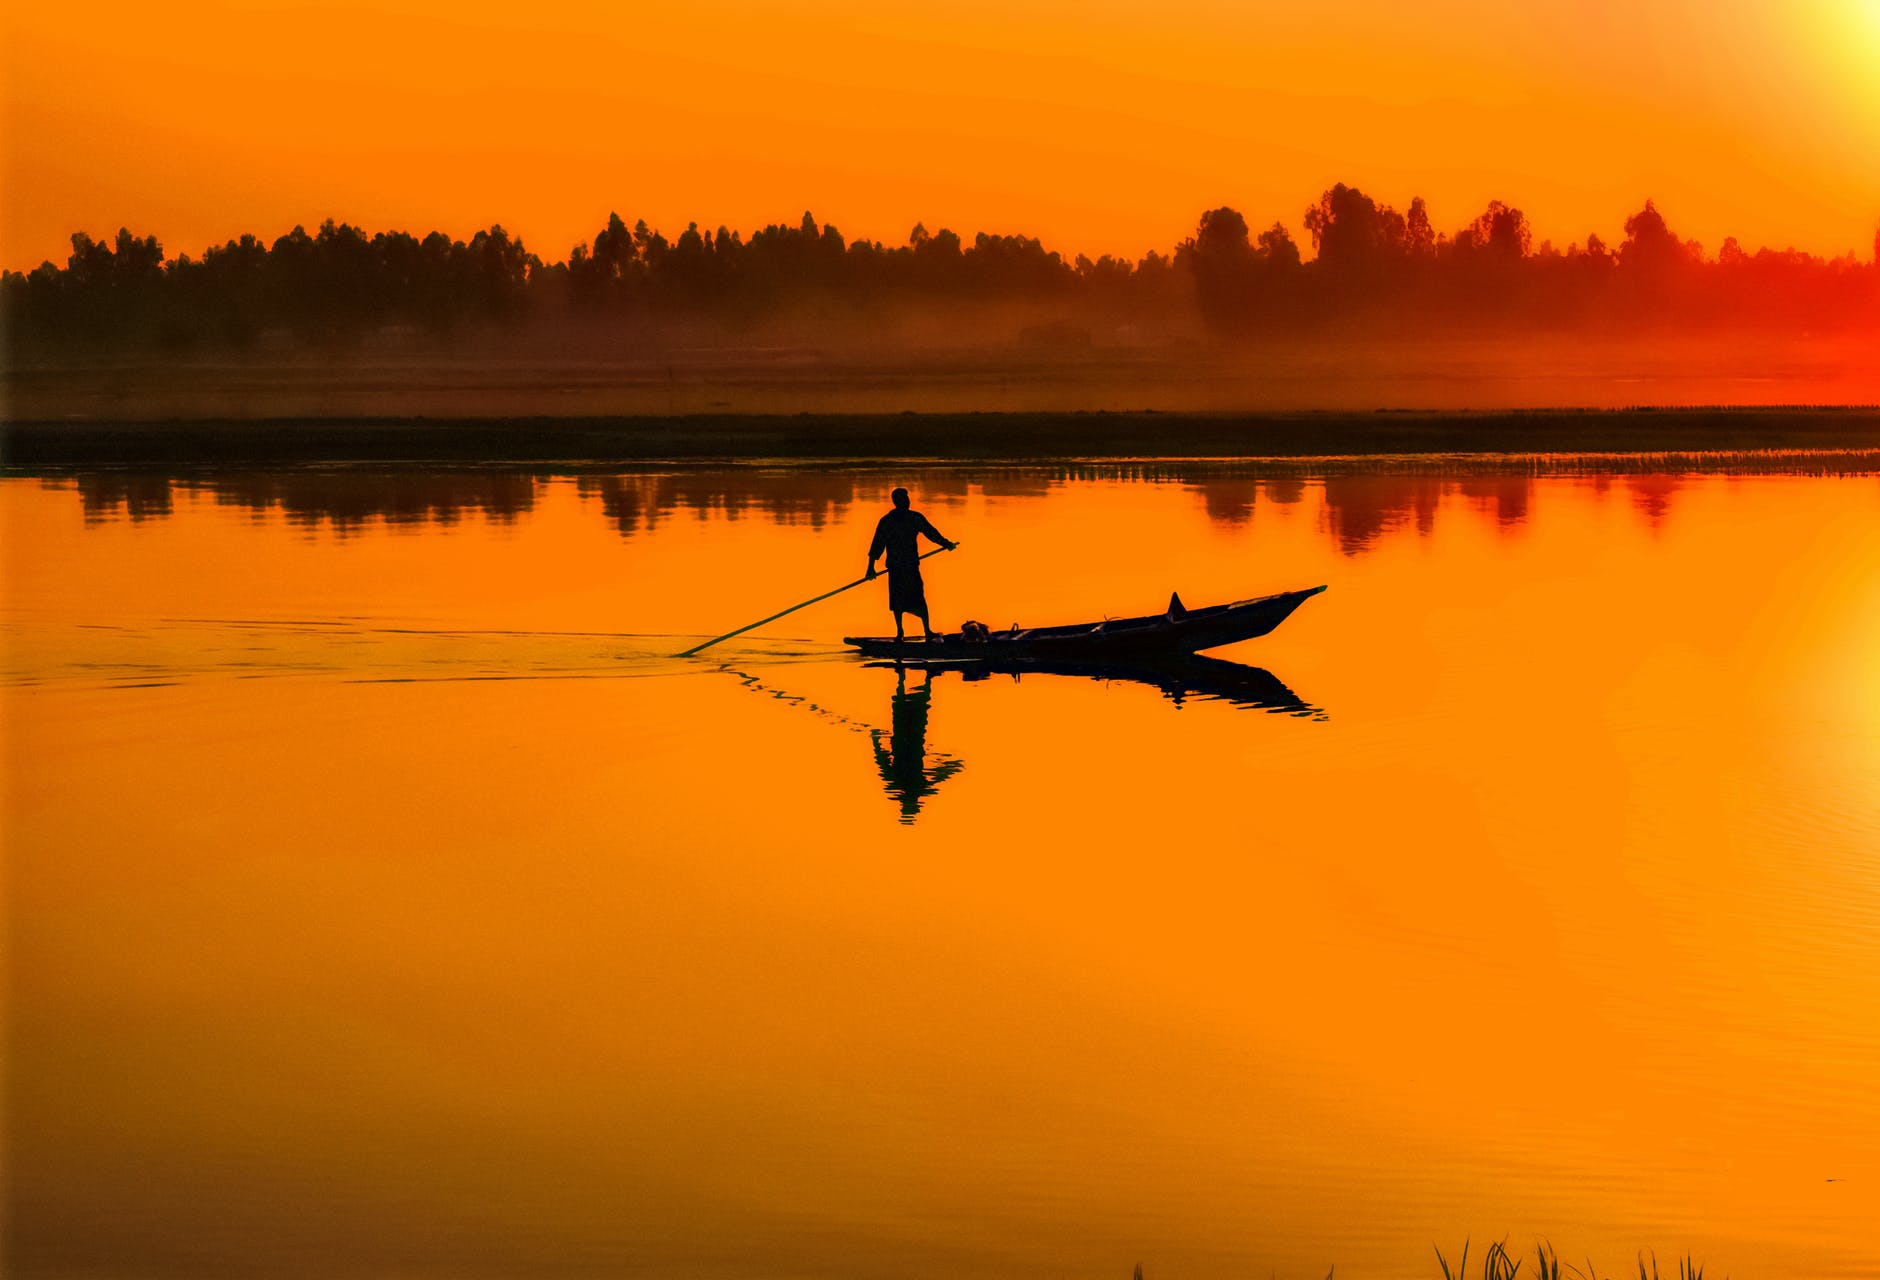 silhouette of man standing on boat in the middle of the lake